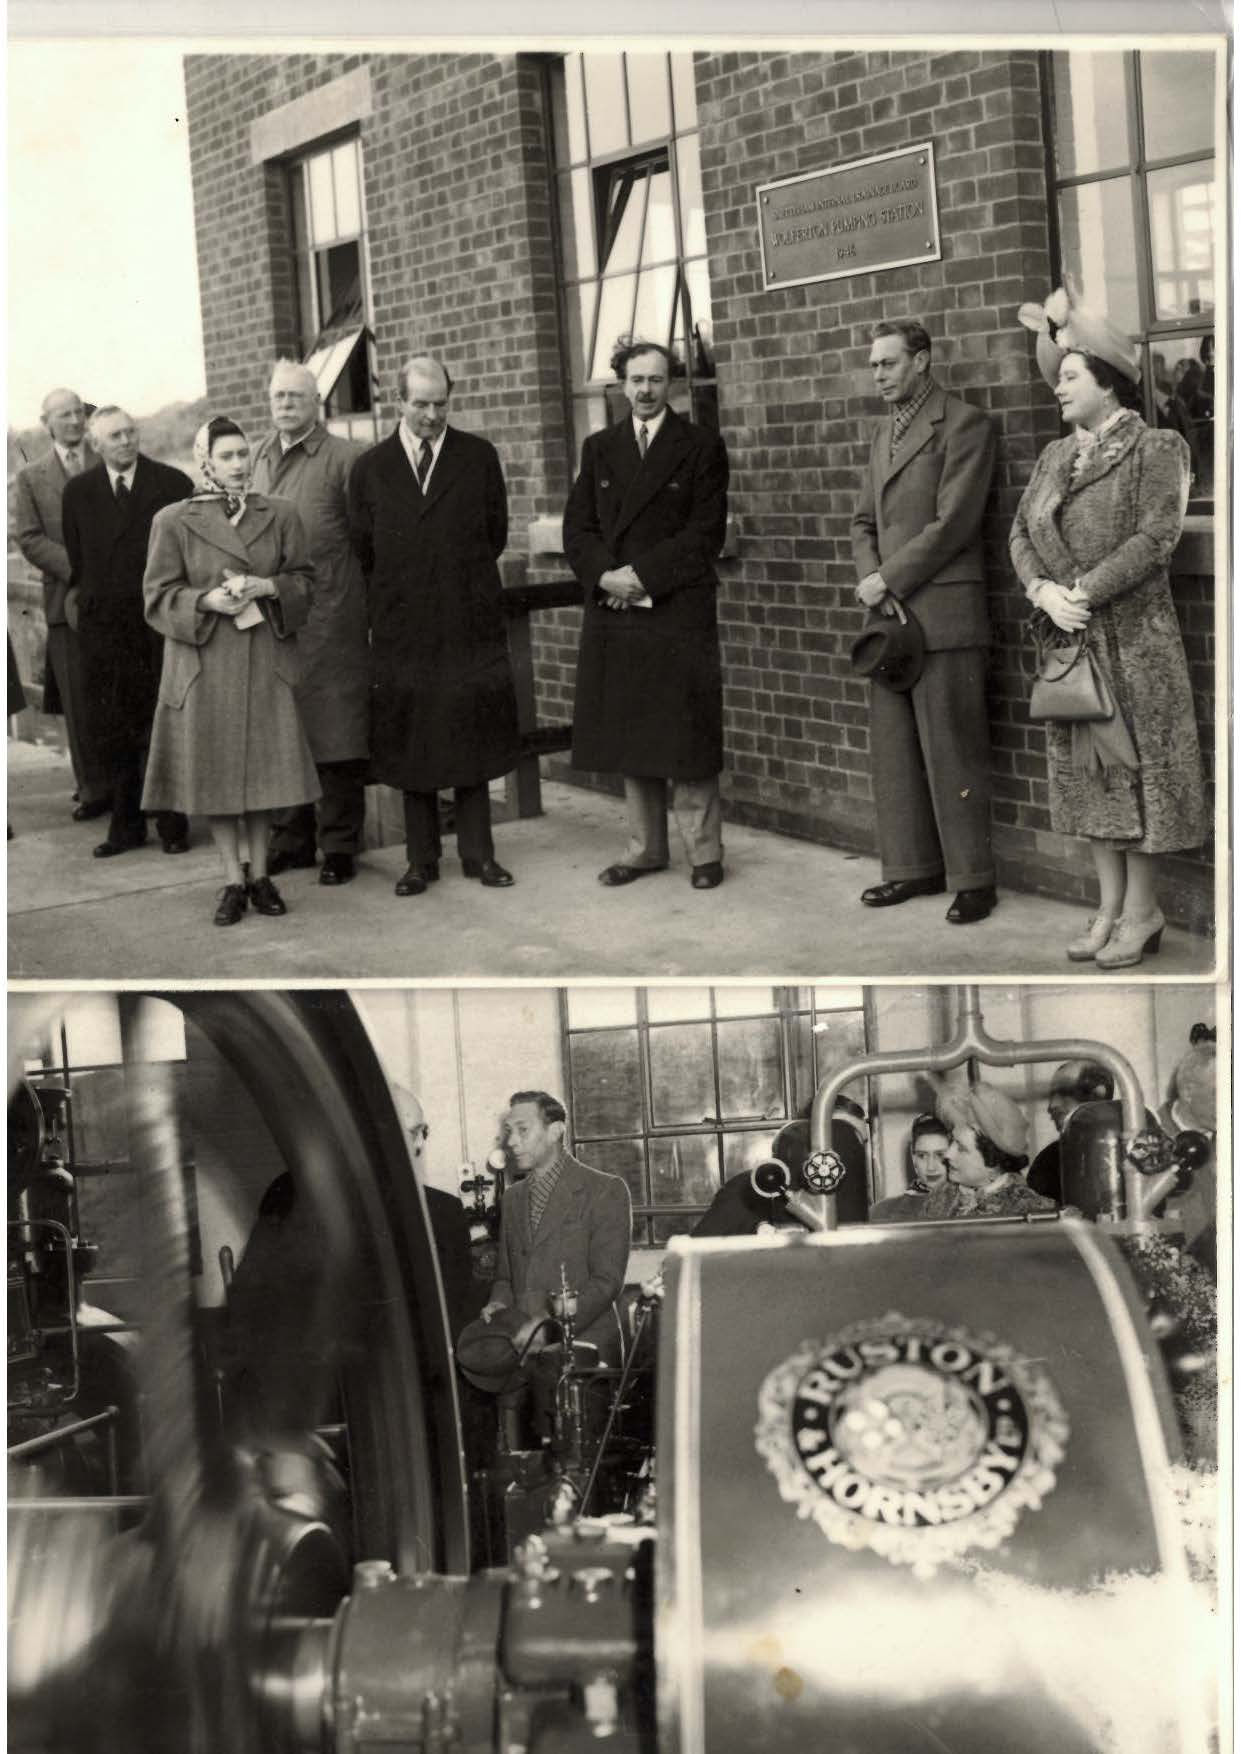 King George, accompanied by Queen Mary and Princess Margaret, opens Wolferton Pumping Station in 1948